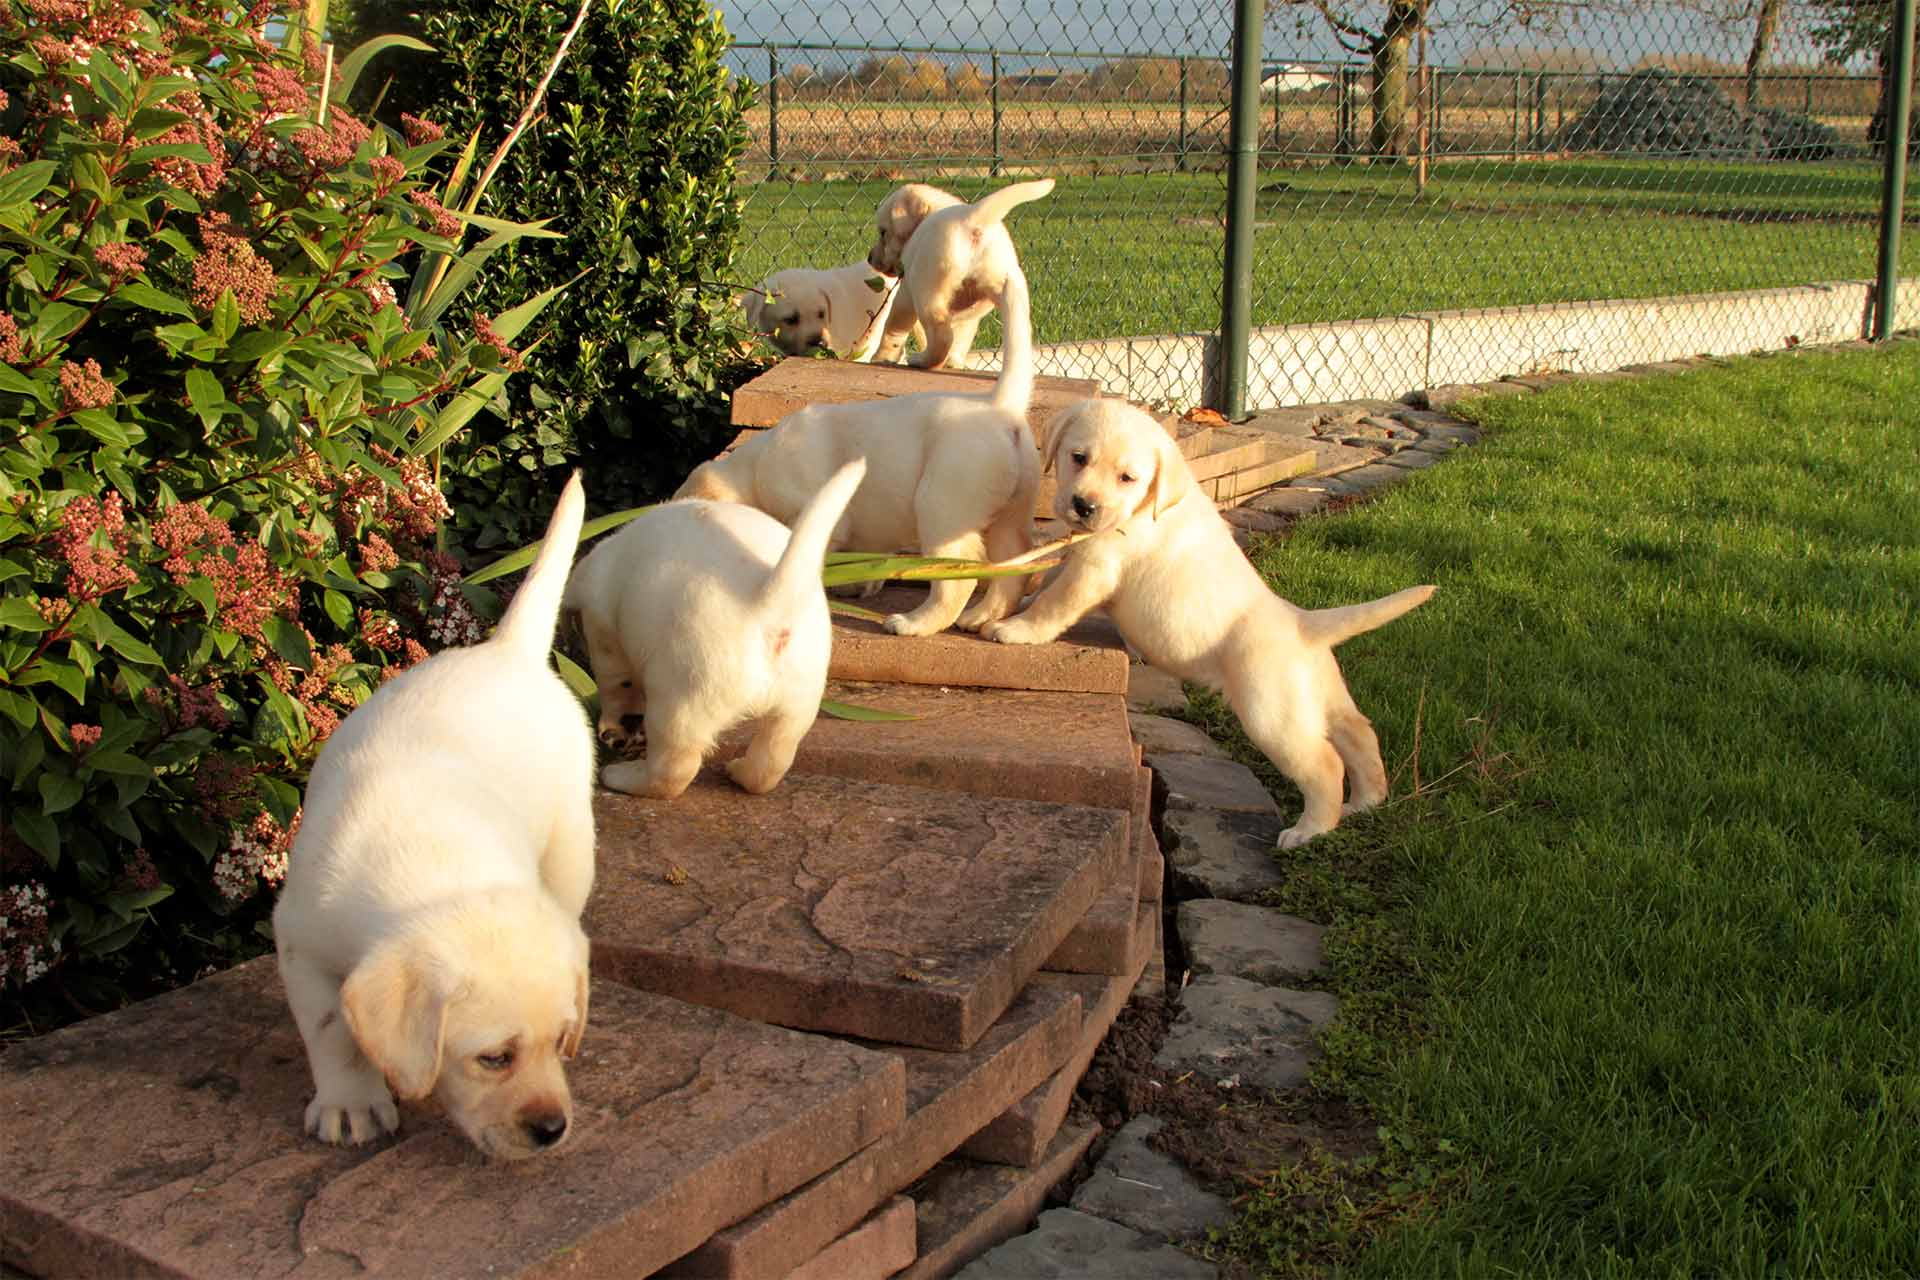 jojamacoshof labrador kennel